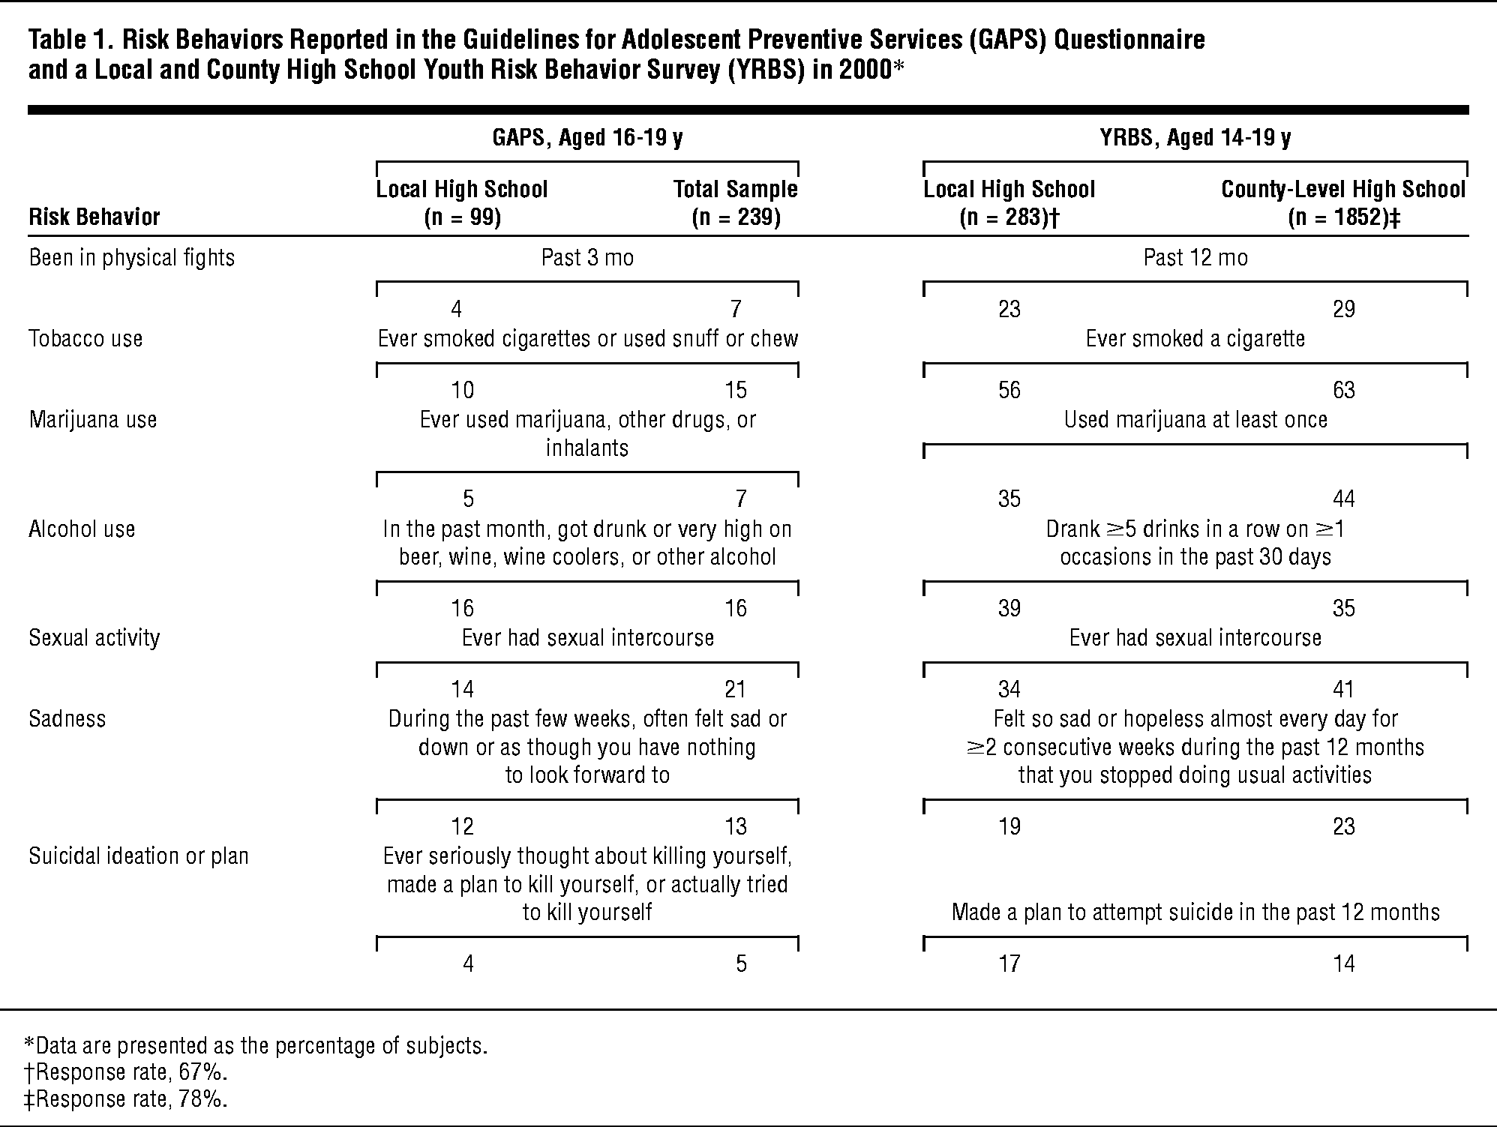 Risk Behaviors Reported in the Guidelines for Adolescent Preventive  Services (GAPS) Questionnaire and a